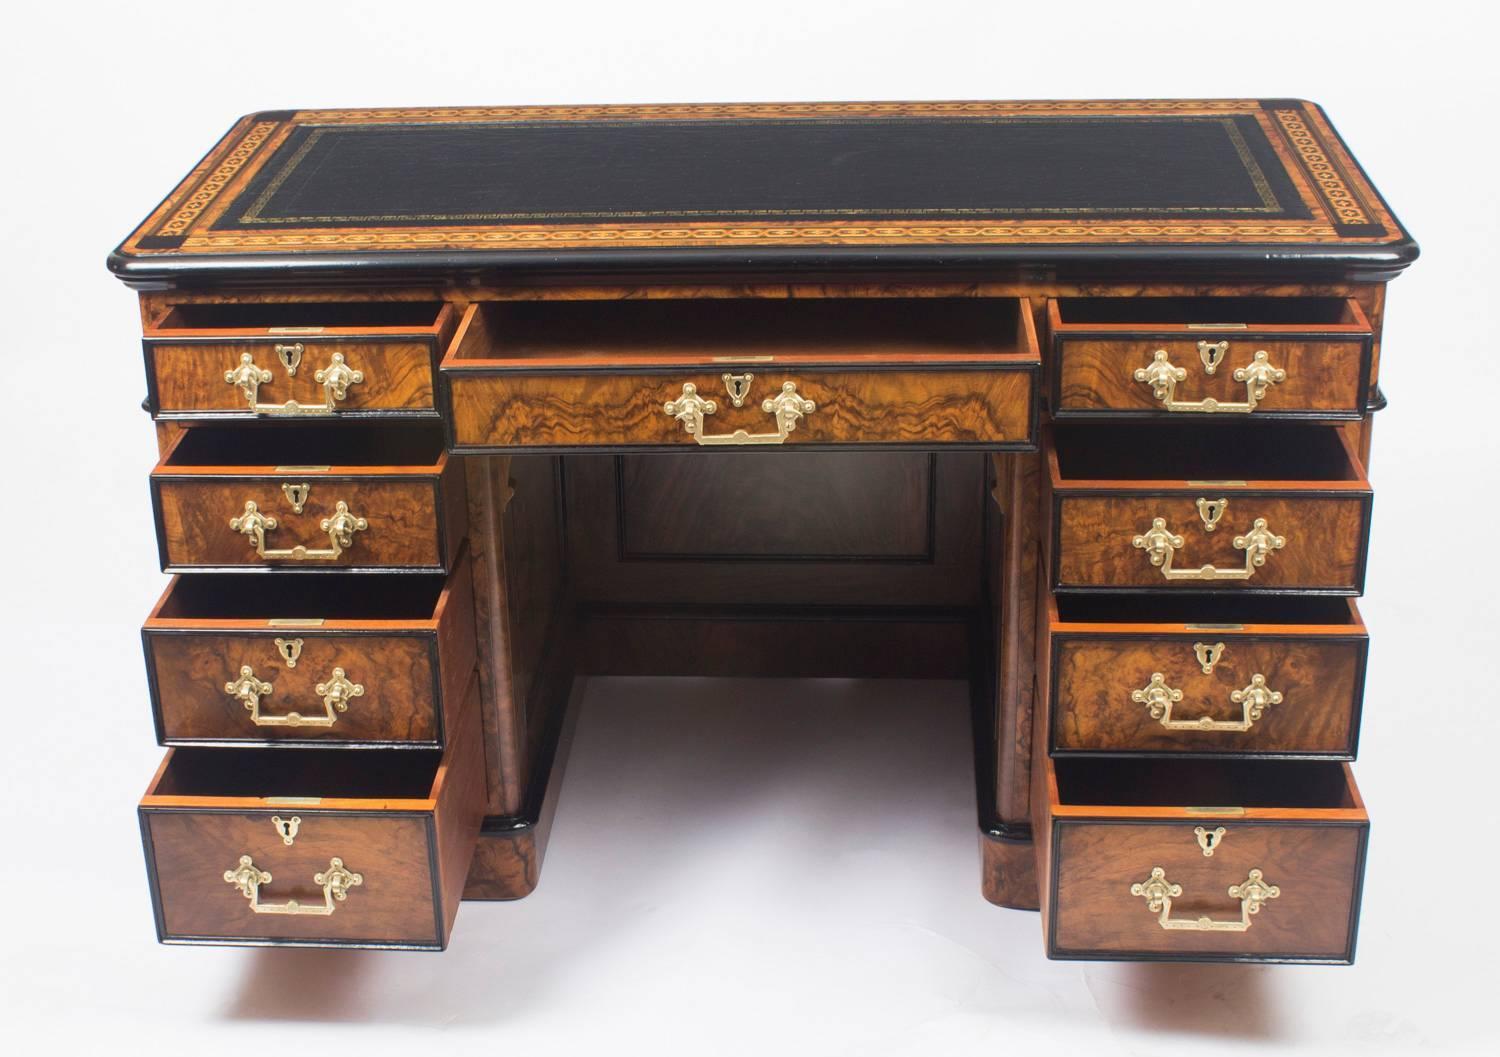 Antique Burr Walnut and Ebonised Marquetry Pedestal Desk, 19th Century For  Sale at 1stdibs - Antique Burr Walnut And Ebonised Marquetry Pedestal Desk, 19th